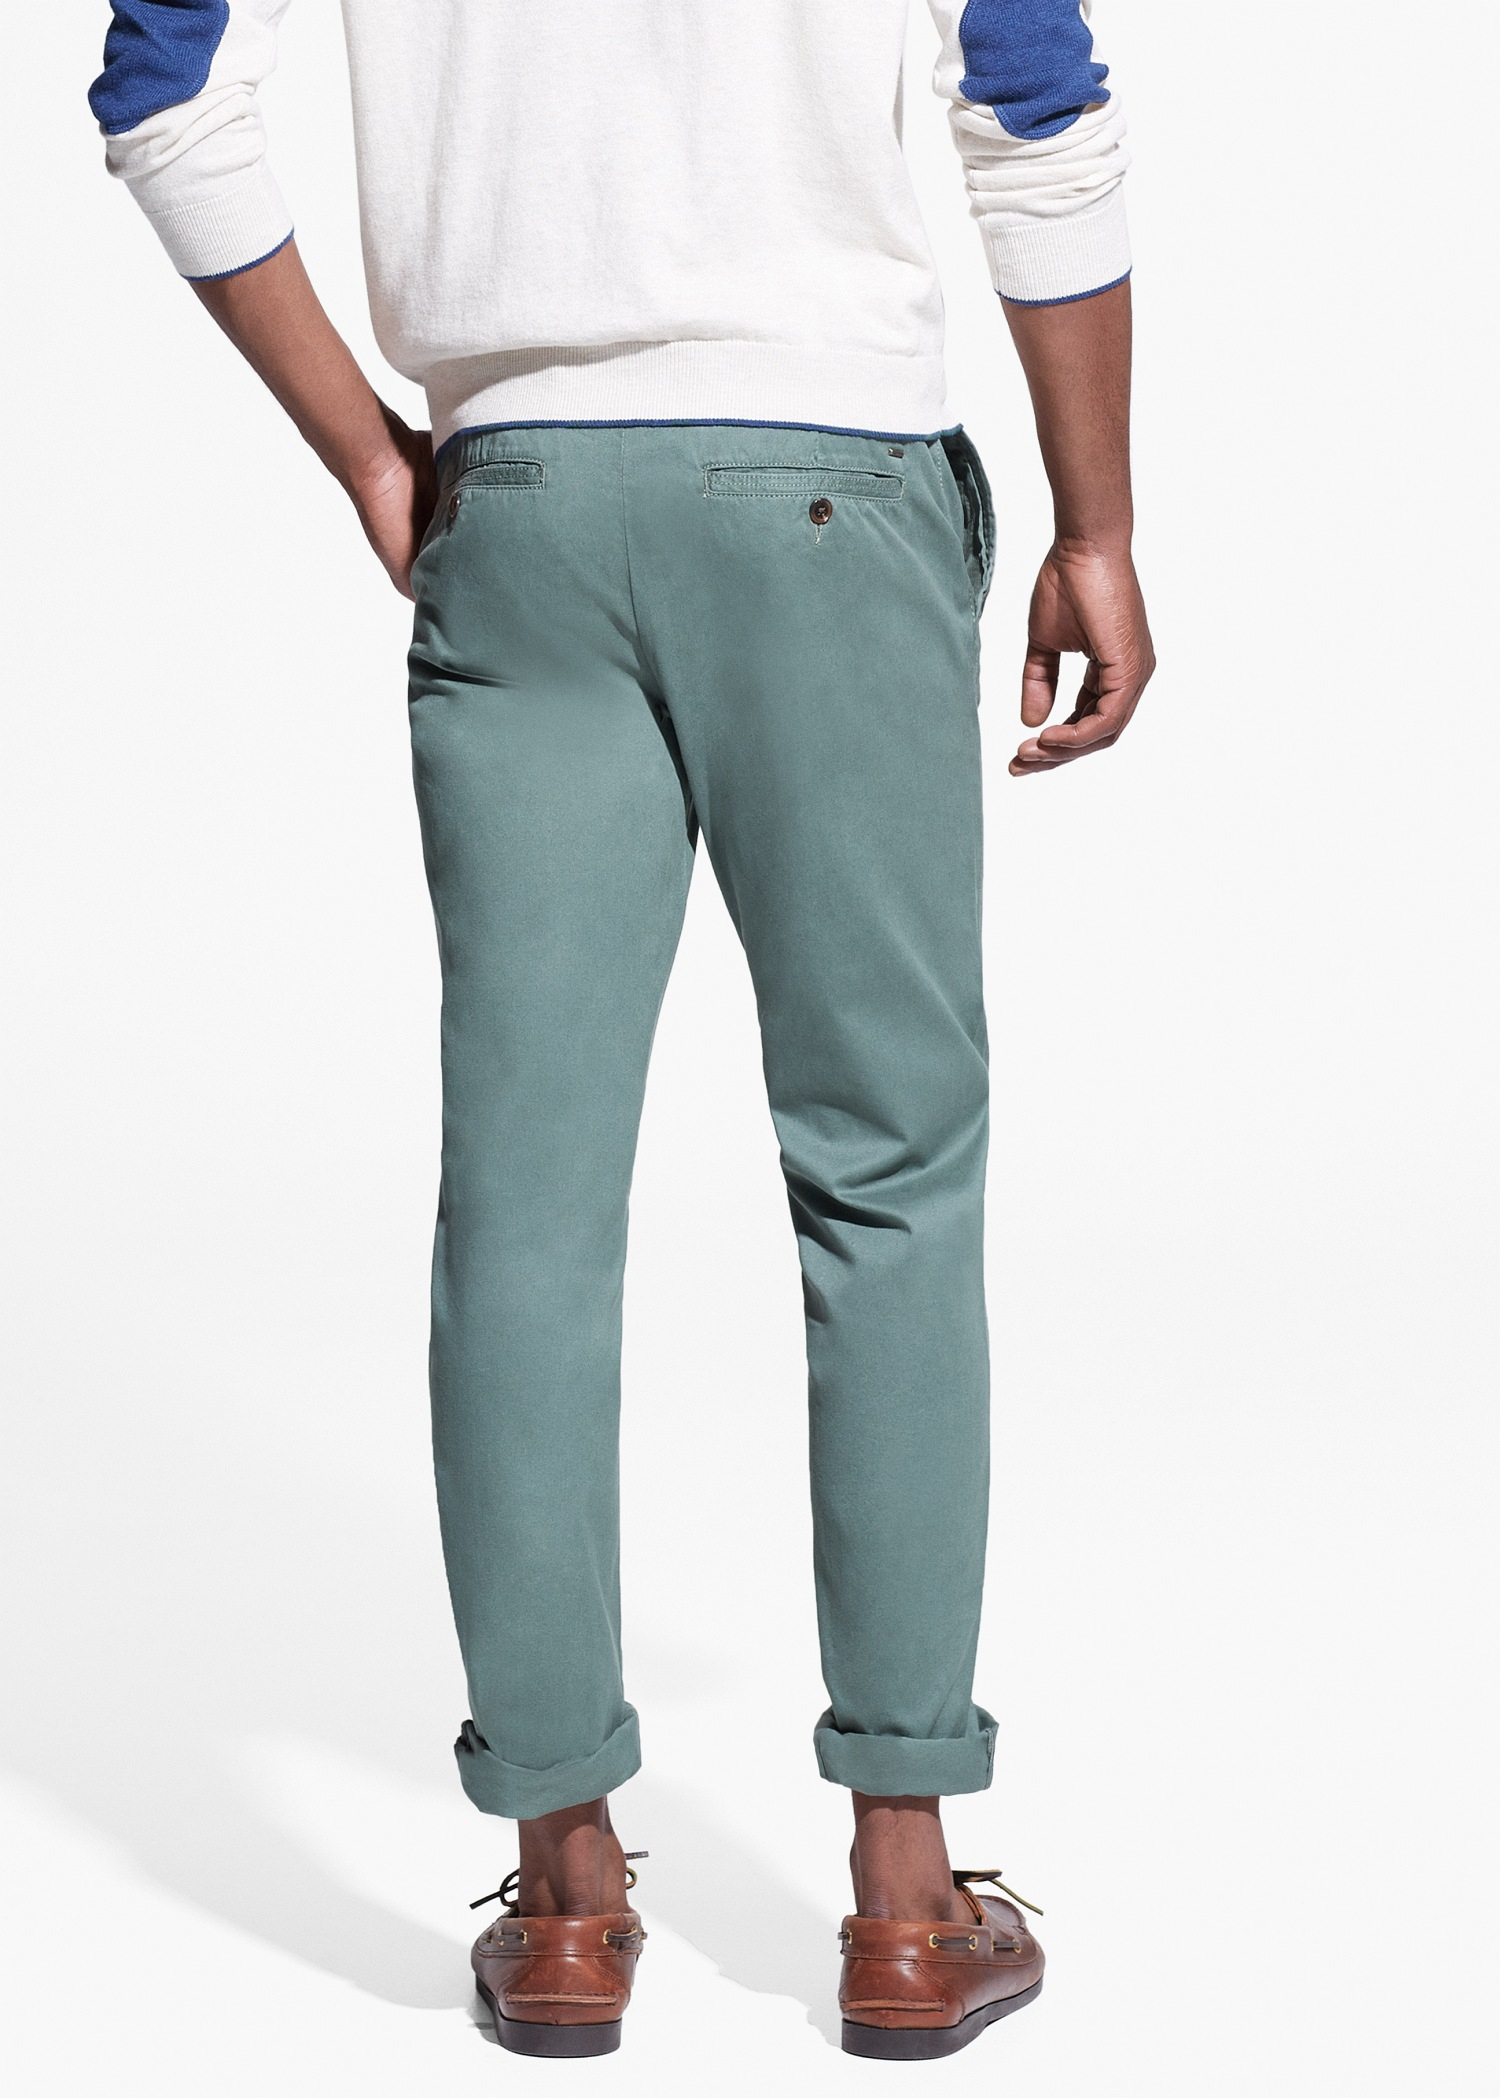 78378b8e6c487 Lyst - Mango Straight-Fit Cotton Chinos in Green for Men